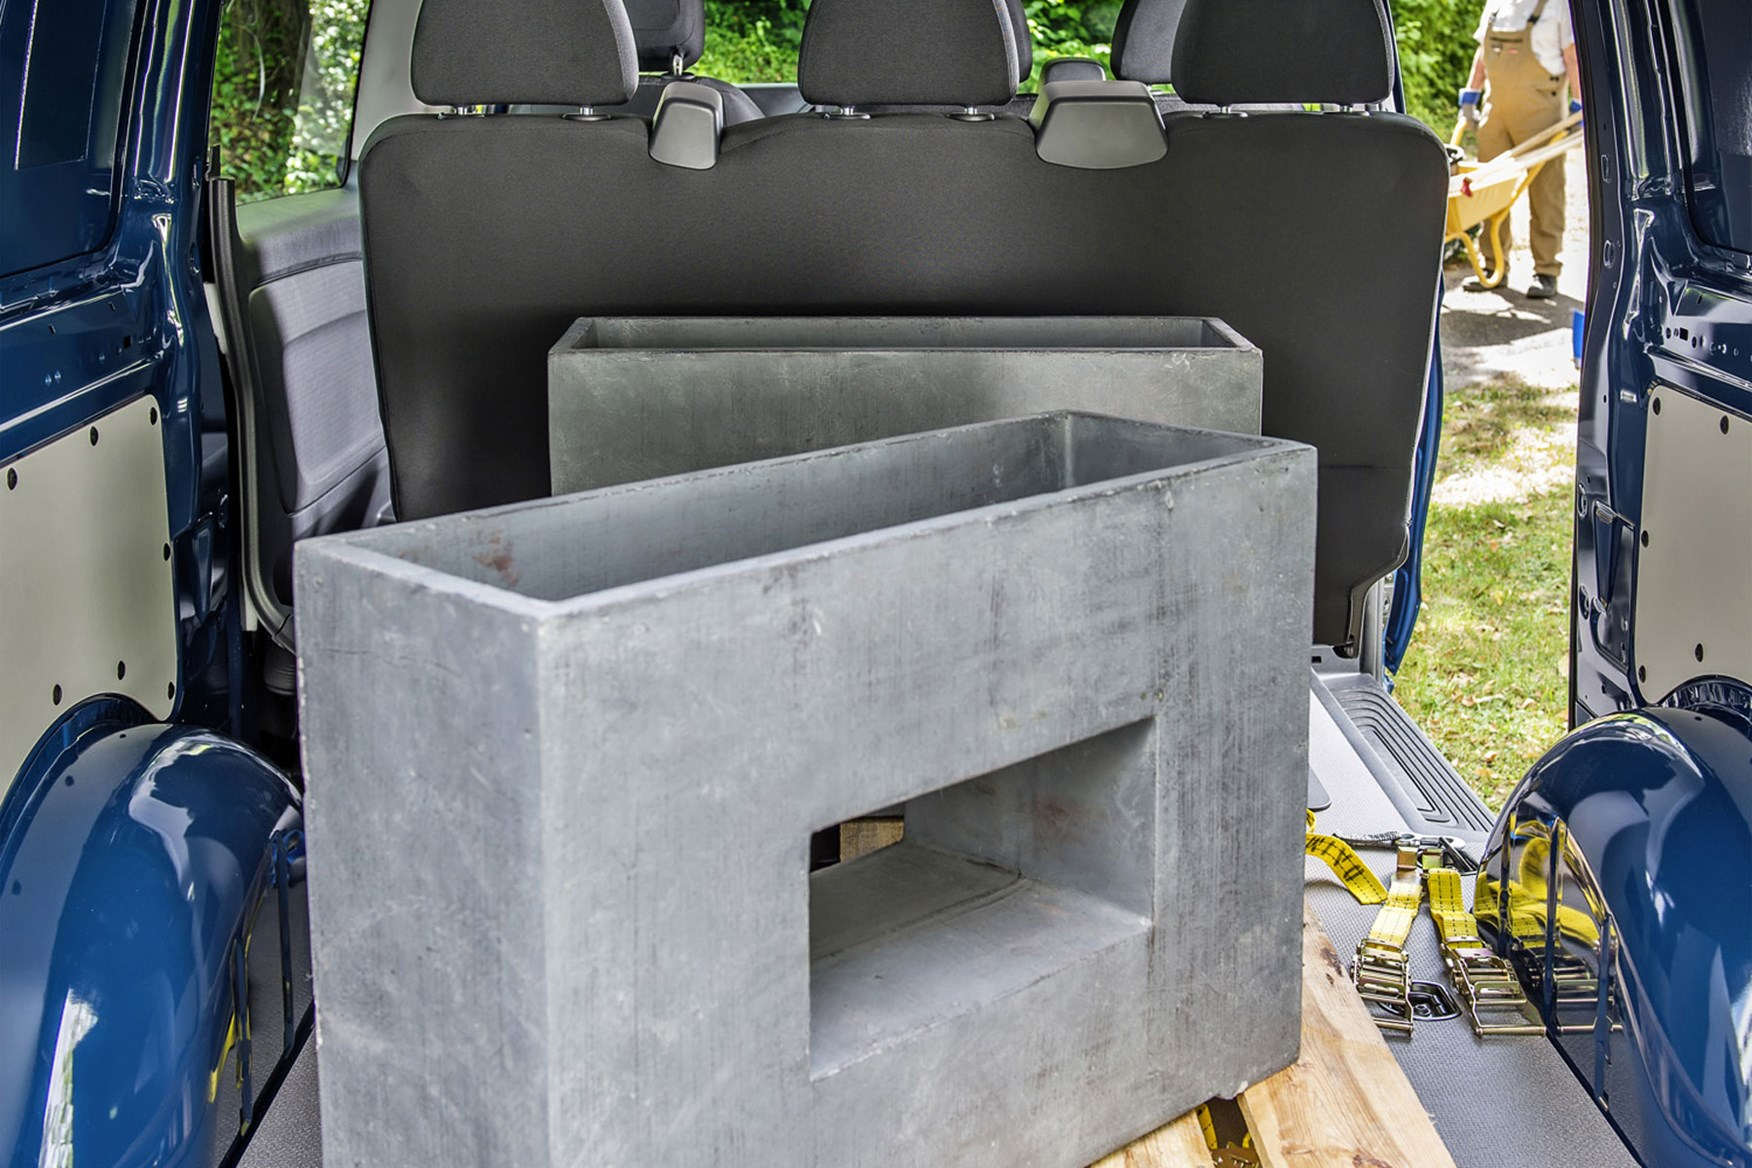 Mercedes-Benz Vito Sport review - load area with building supplies and open bulkhead